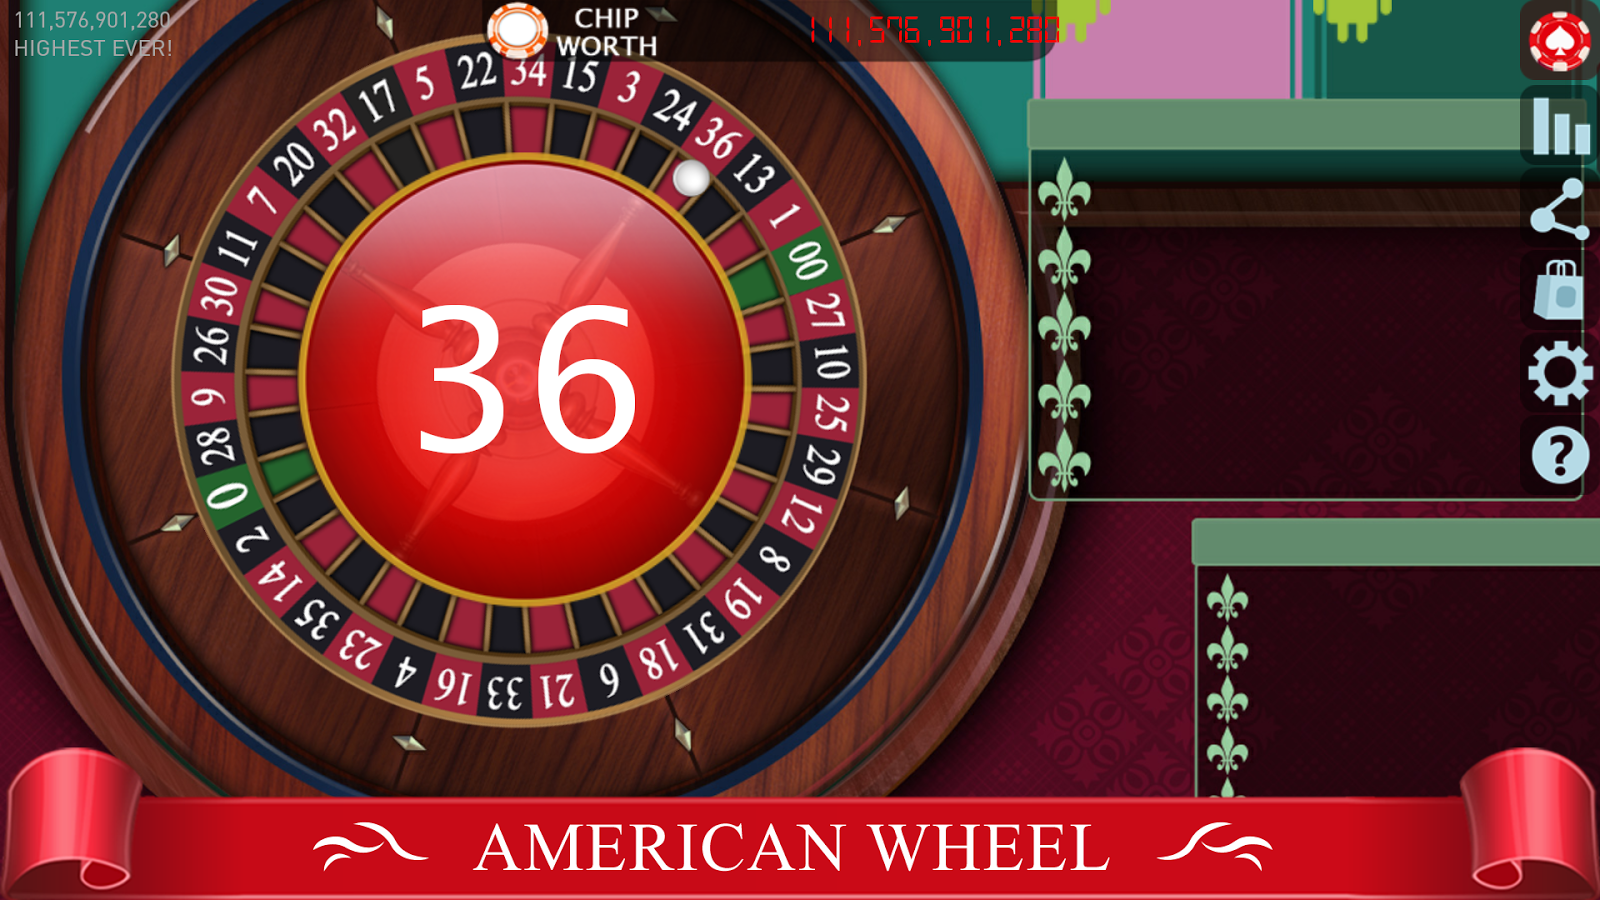 casino royale online casino european roulette